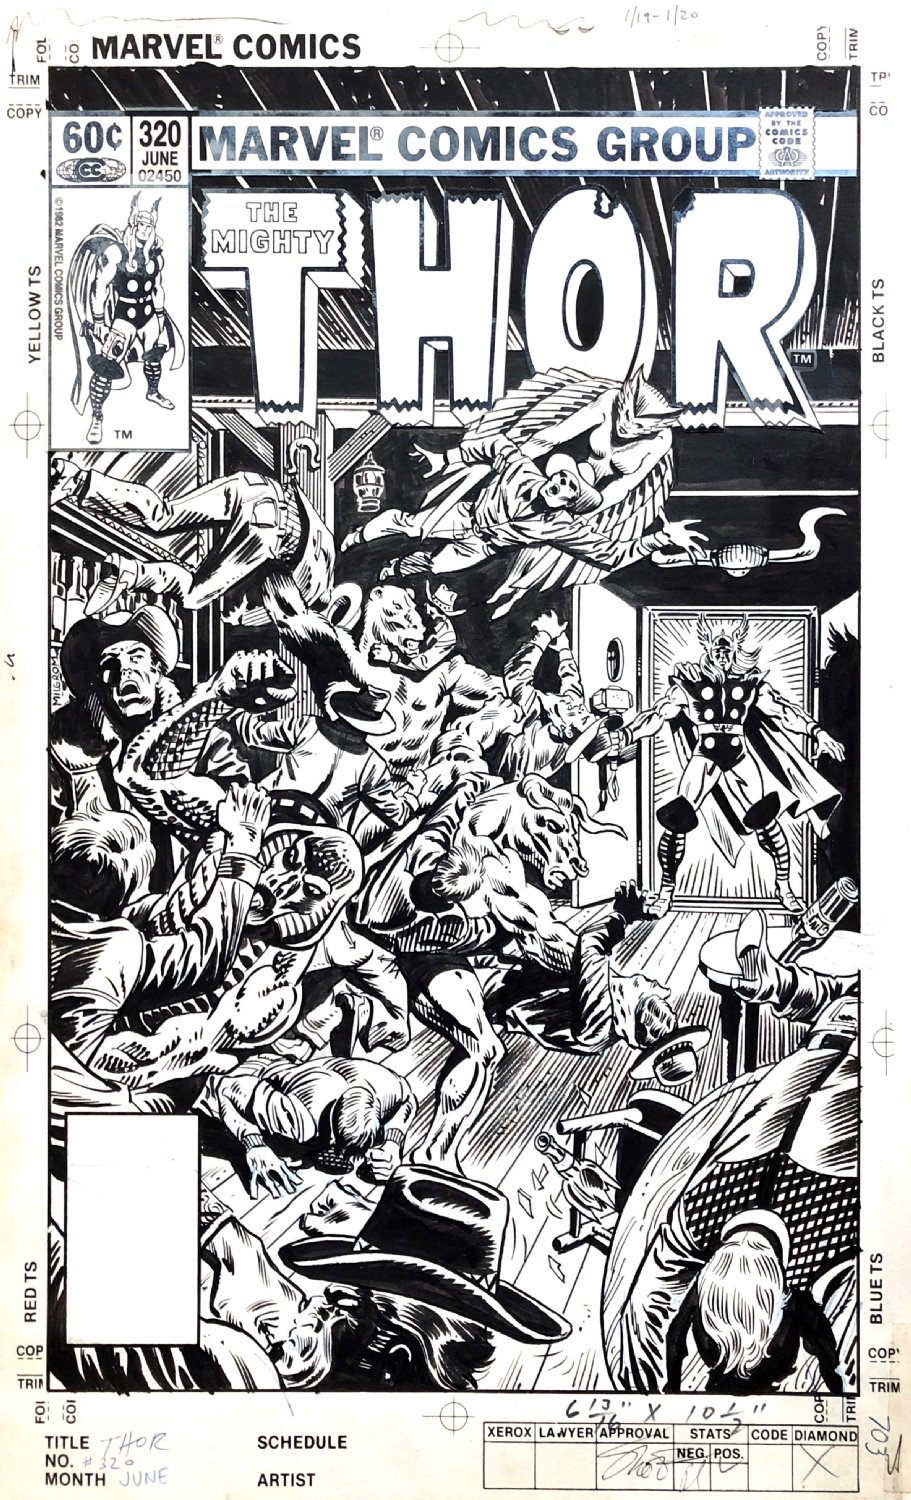 Thor #320 Cover (1982)